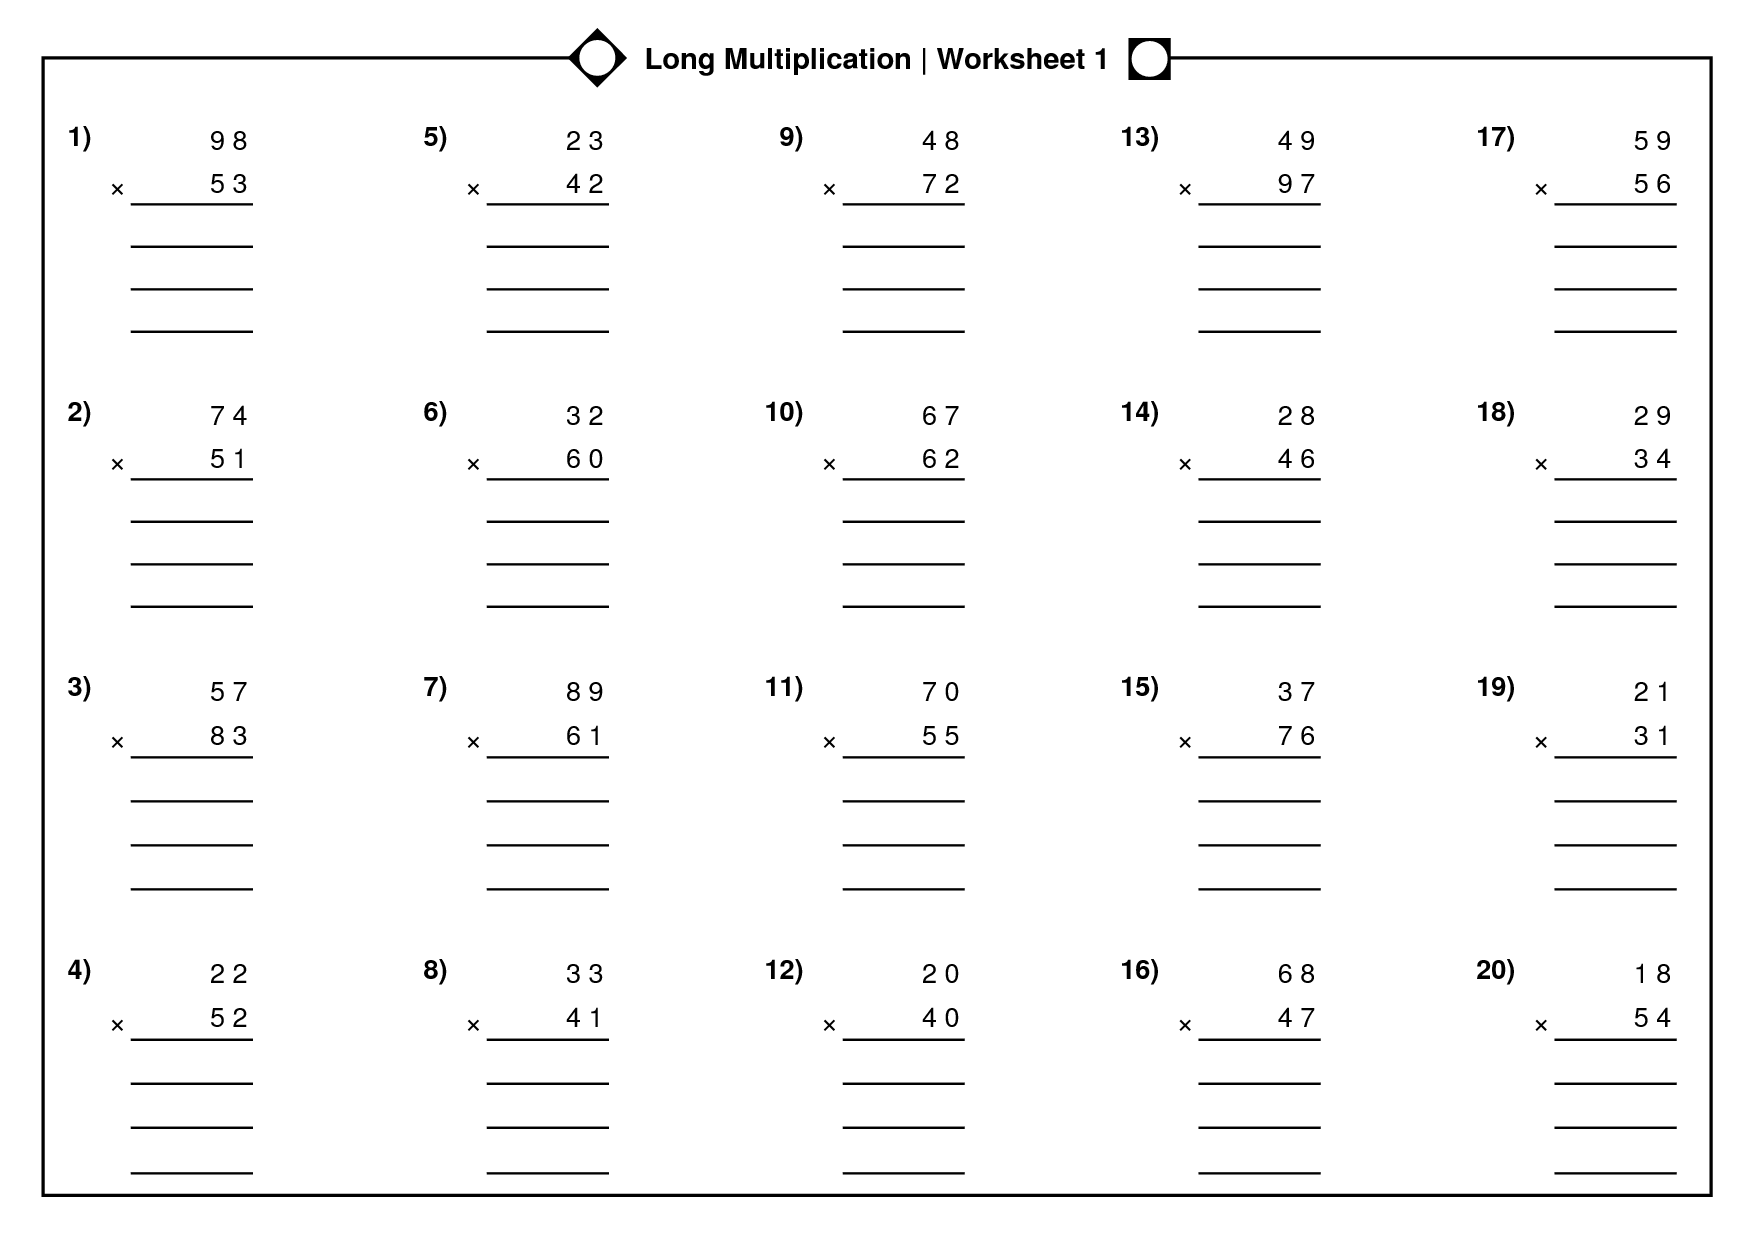 Free Printable Long Division Worksheets 5th Grade Printabletemplates